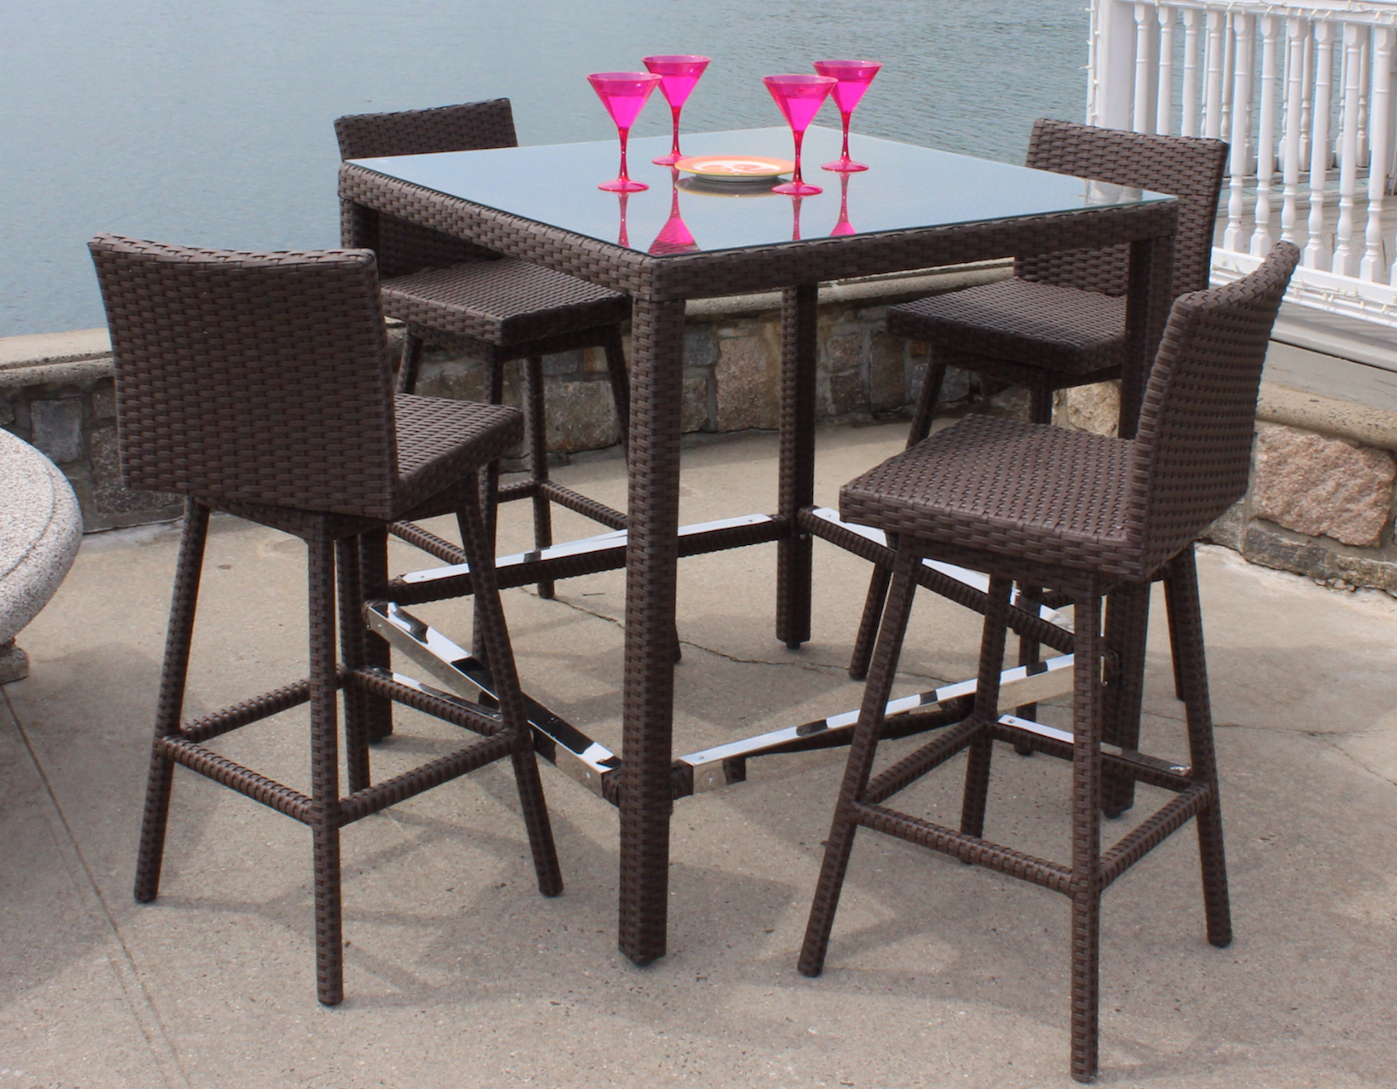 Swivel Patio Chairs Clearance Secondary Living Room Outdoor Bar Sets